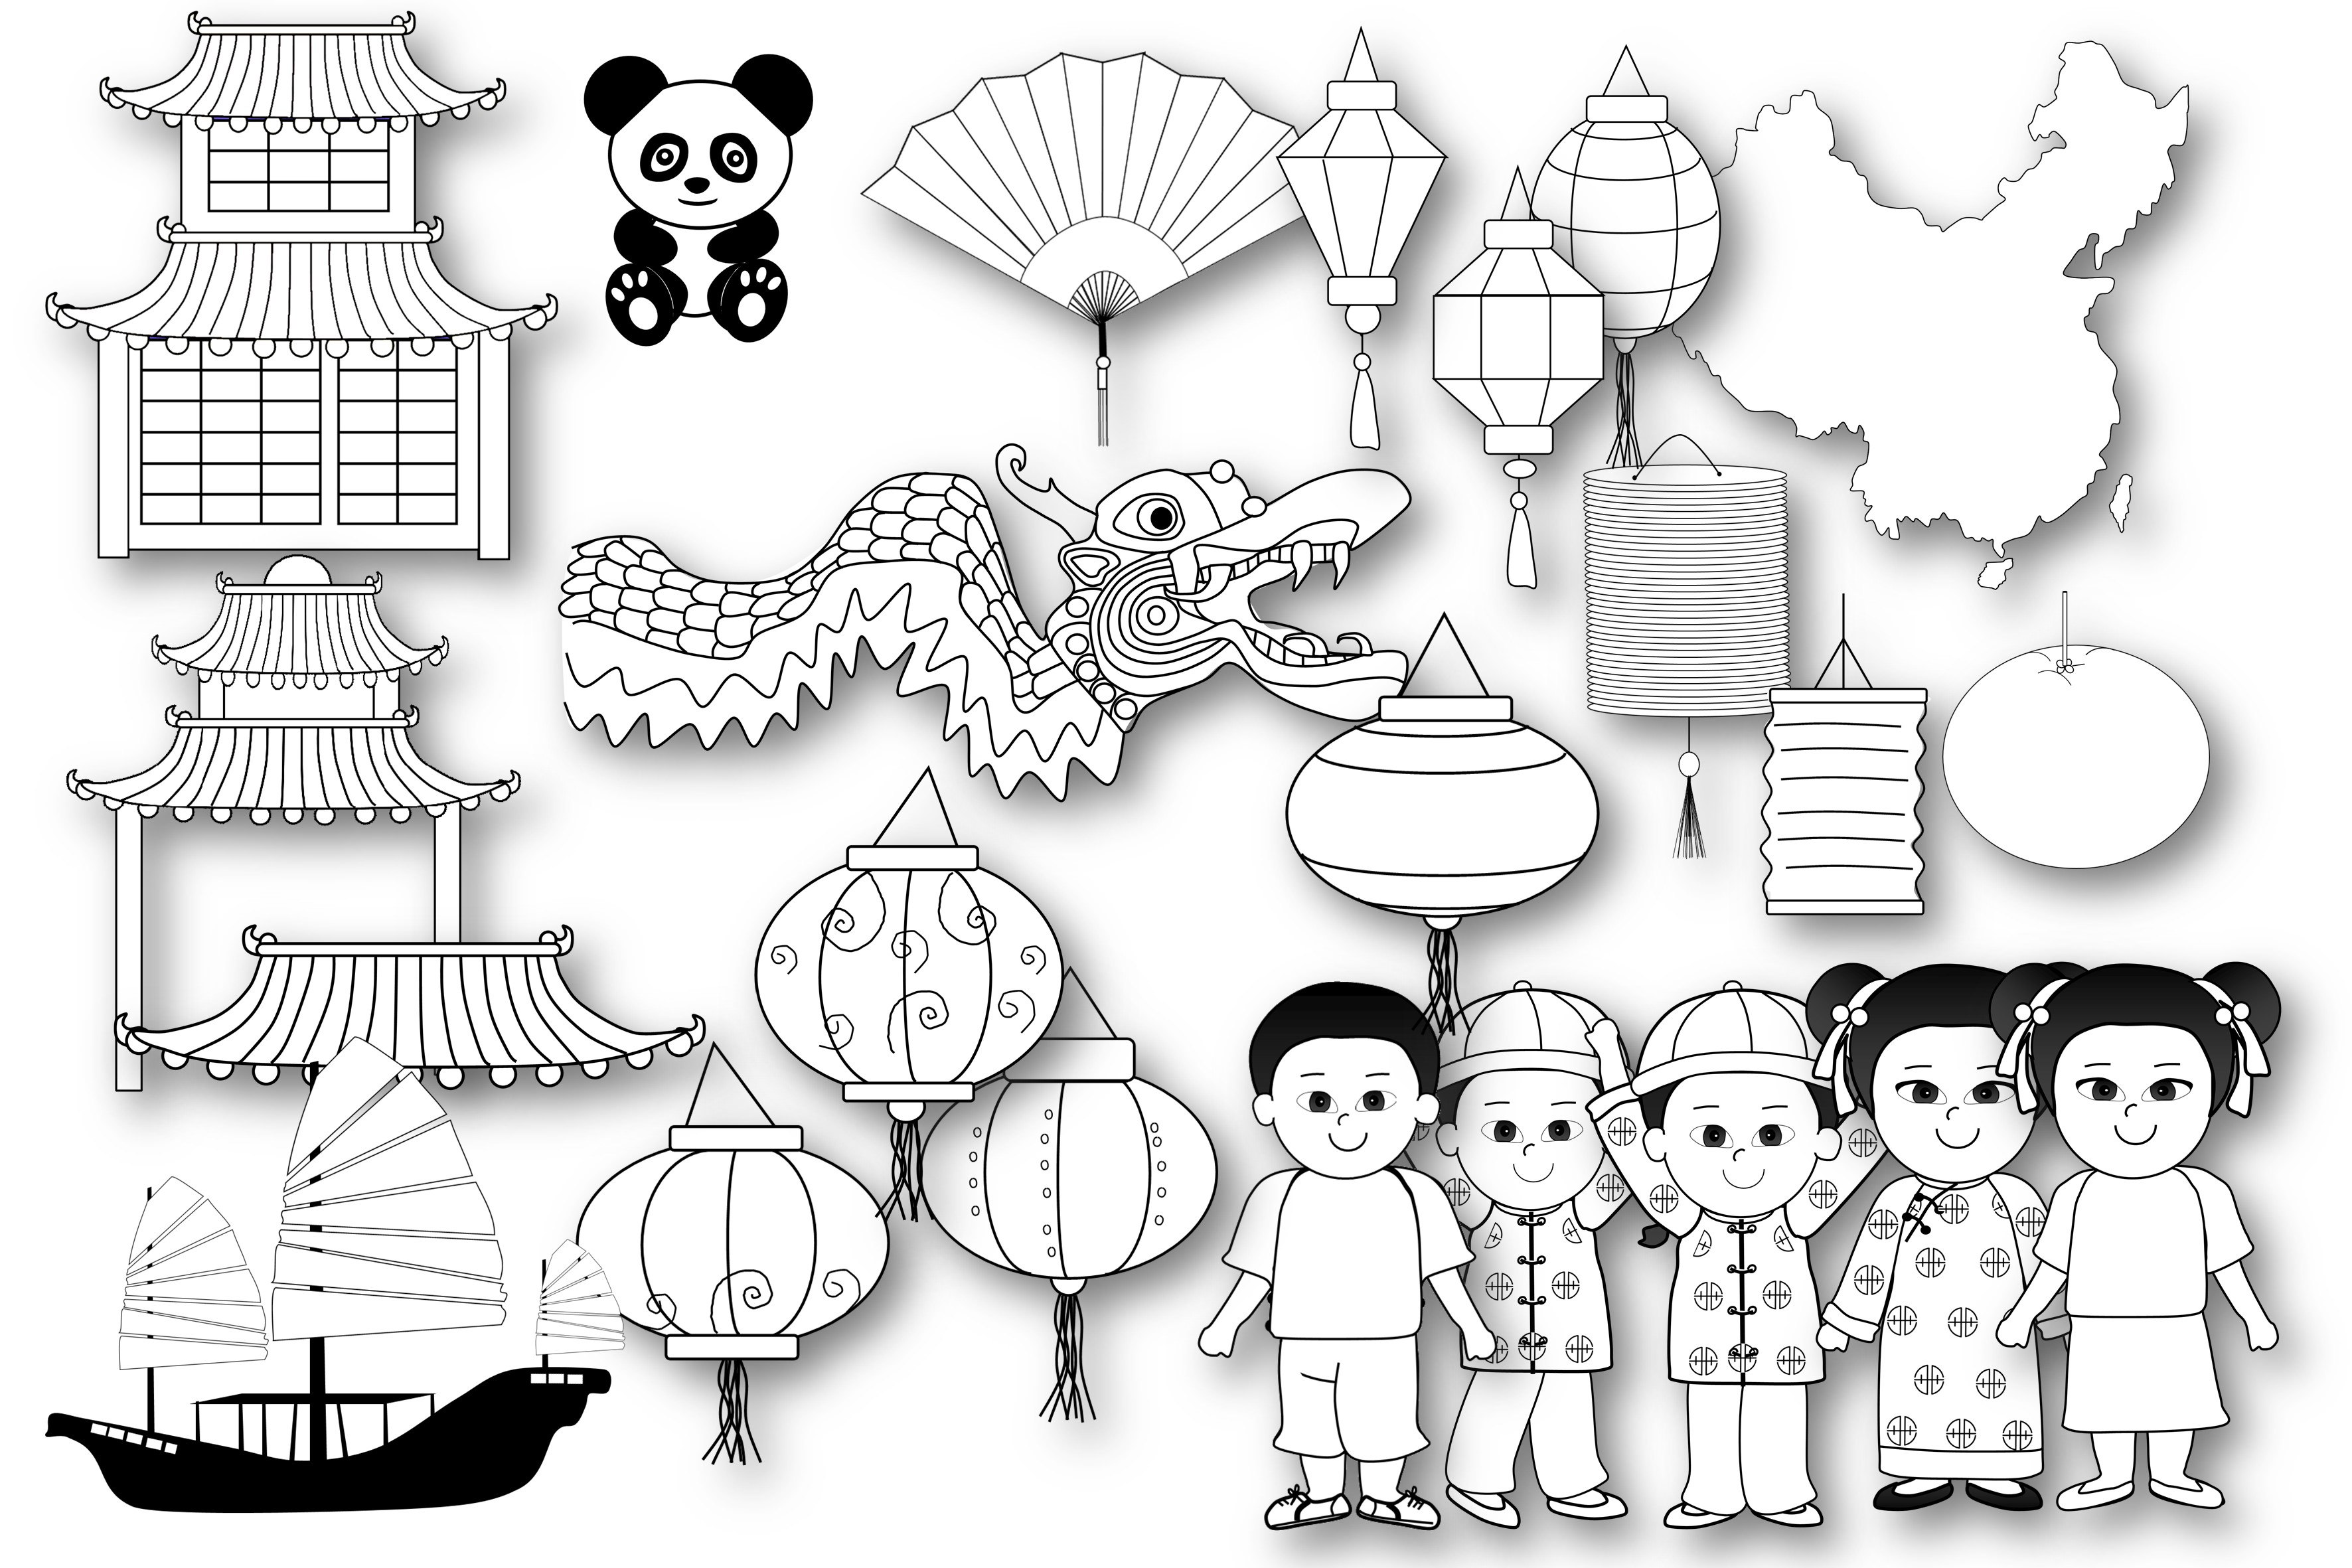 Chinese Theme Graphics example image 3